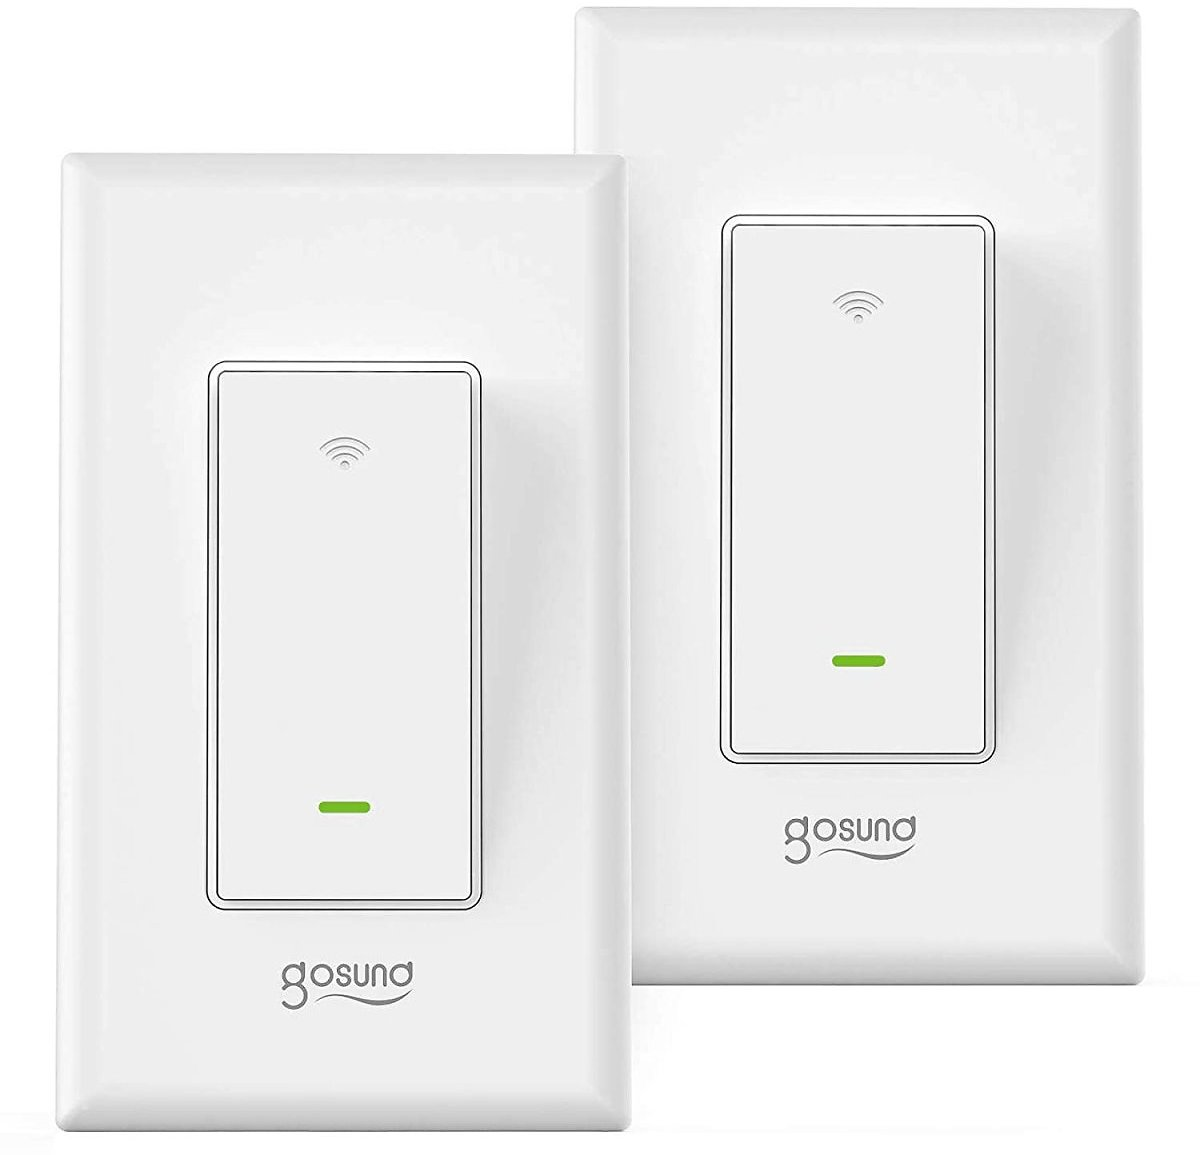 Save On 20% On Smart 3 Way Switch 2 Pack On Amazon.com